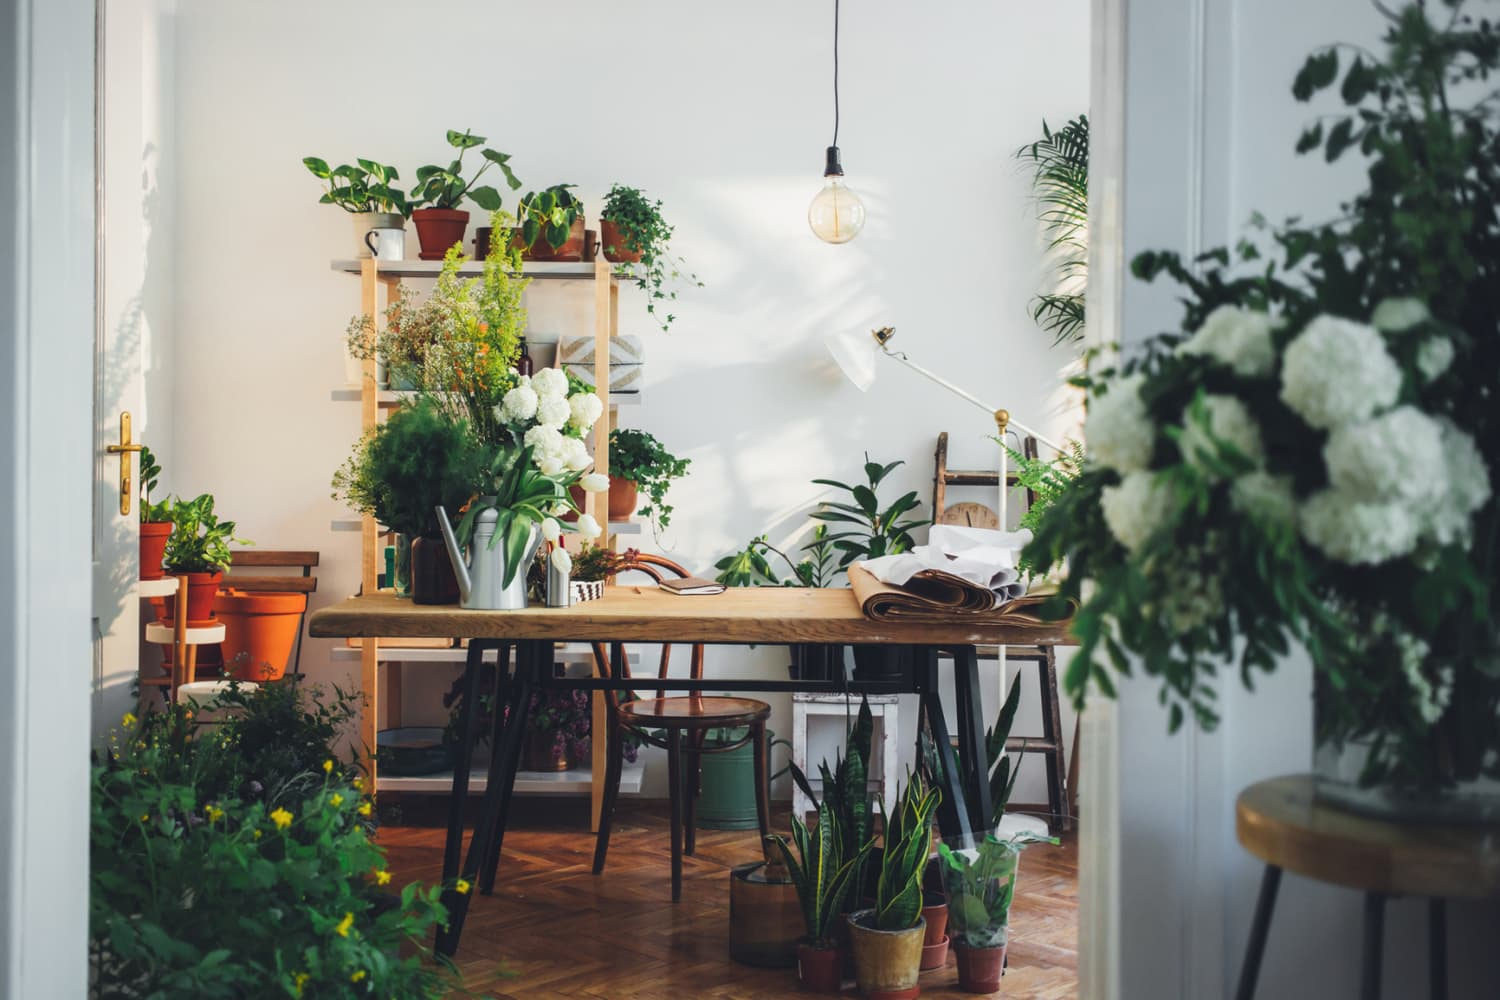 I Lost My Entire 30+ Plant Collection — Here Are 5 Ways I'm Rebuilding It Differently